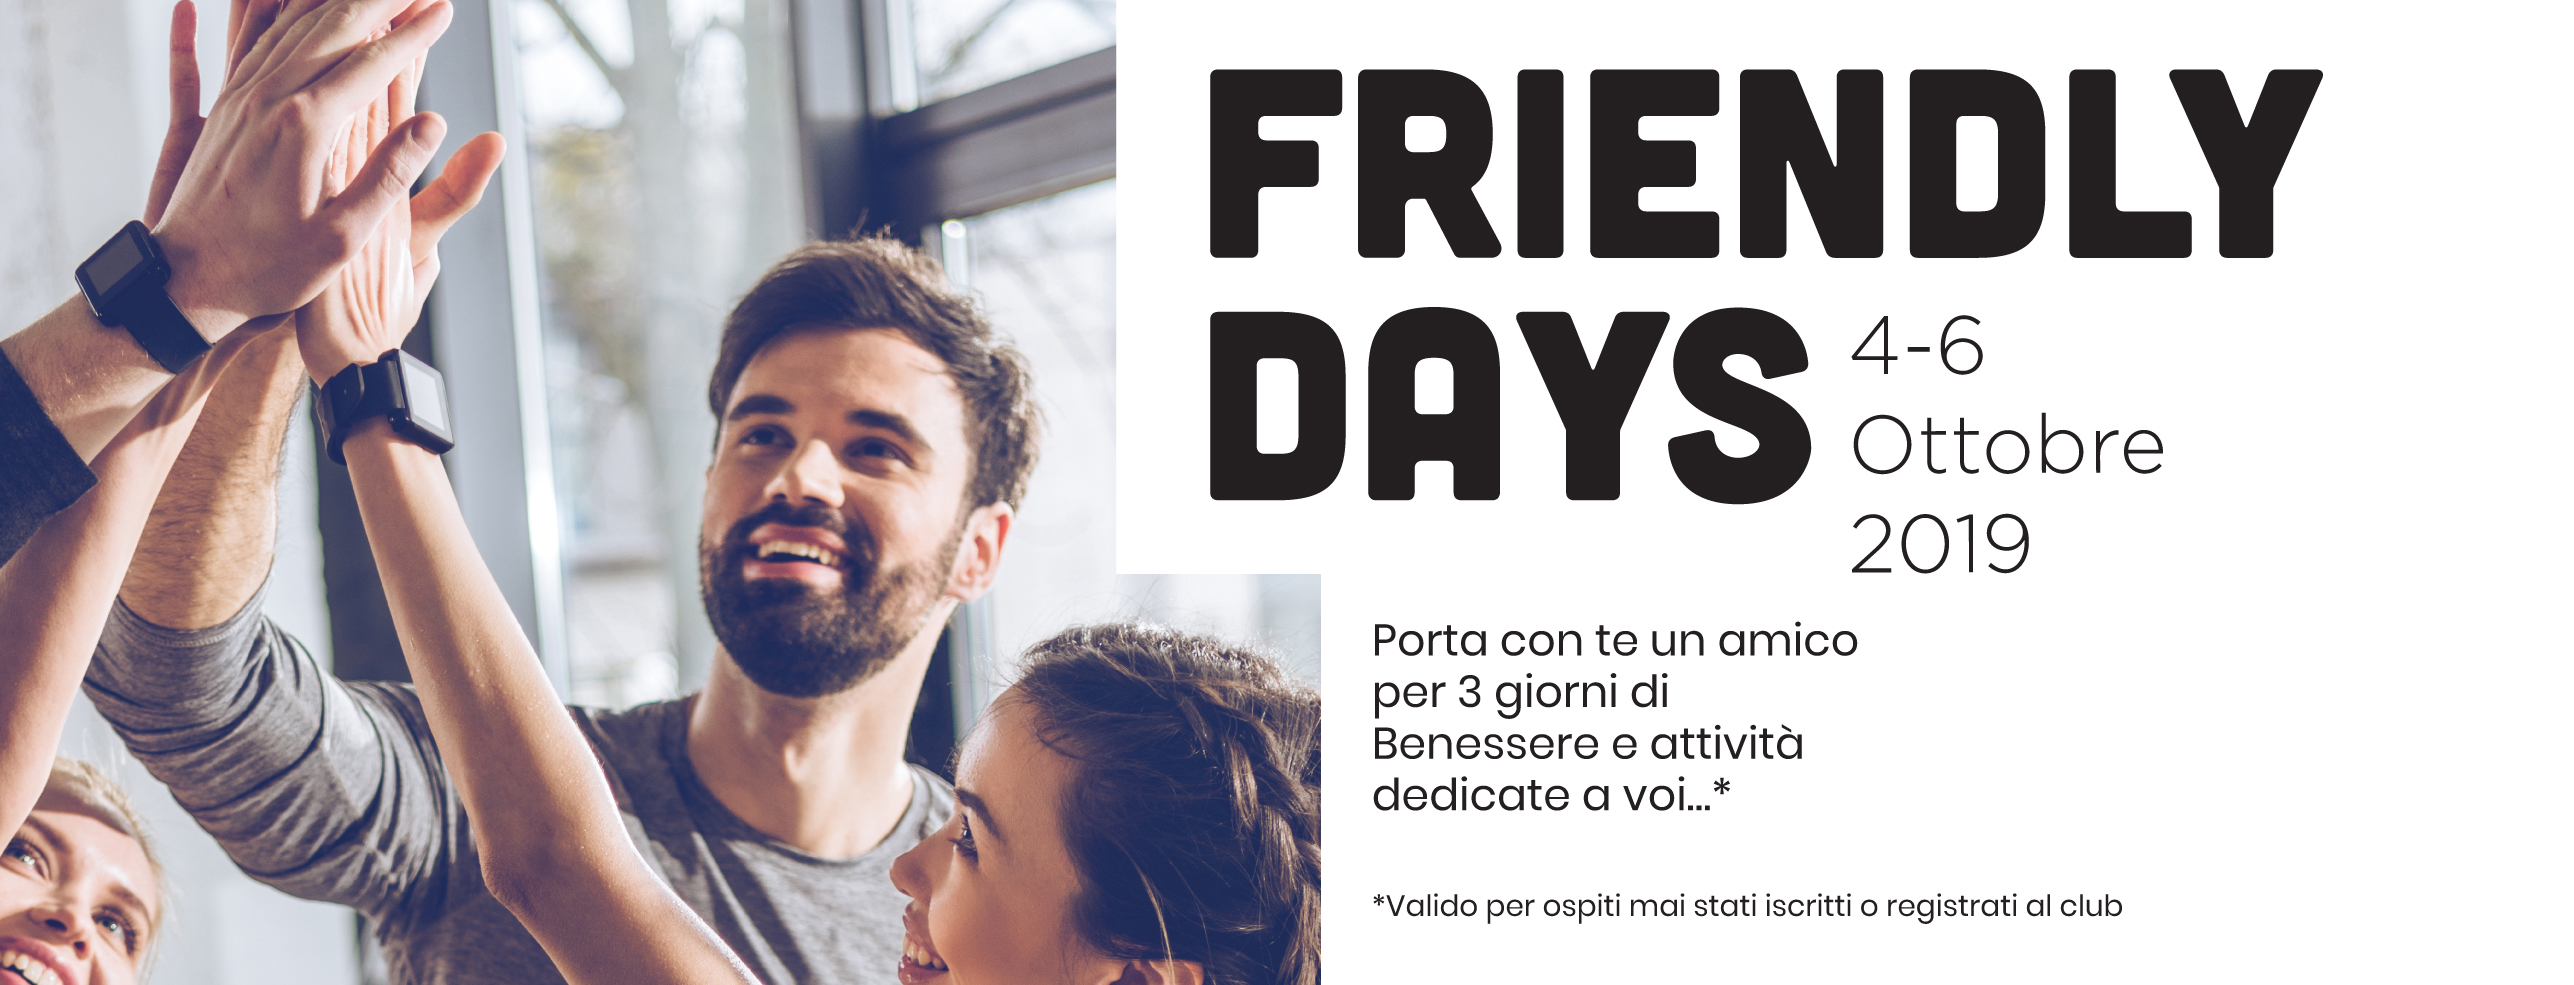 Friendly Days  4-6 Ottobre 2019 1